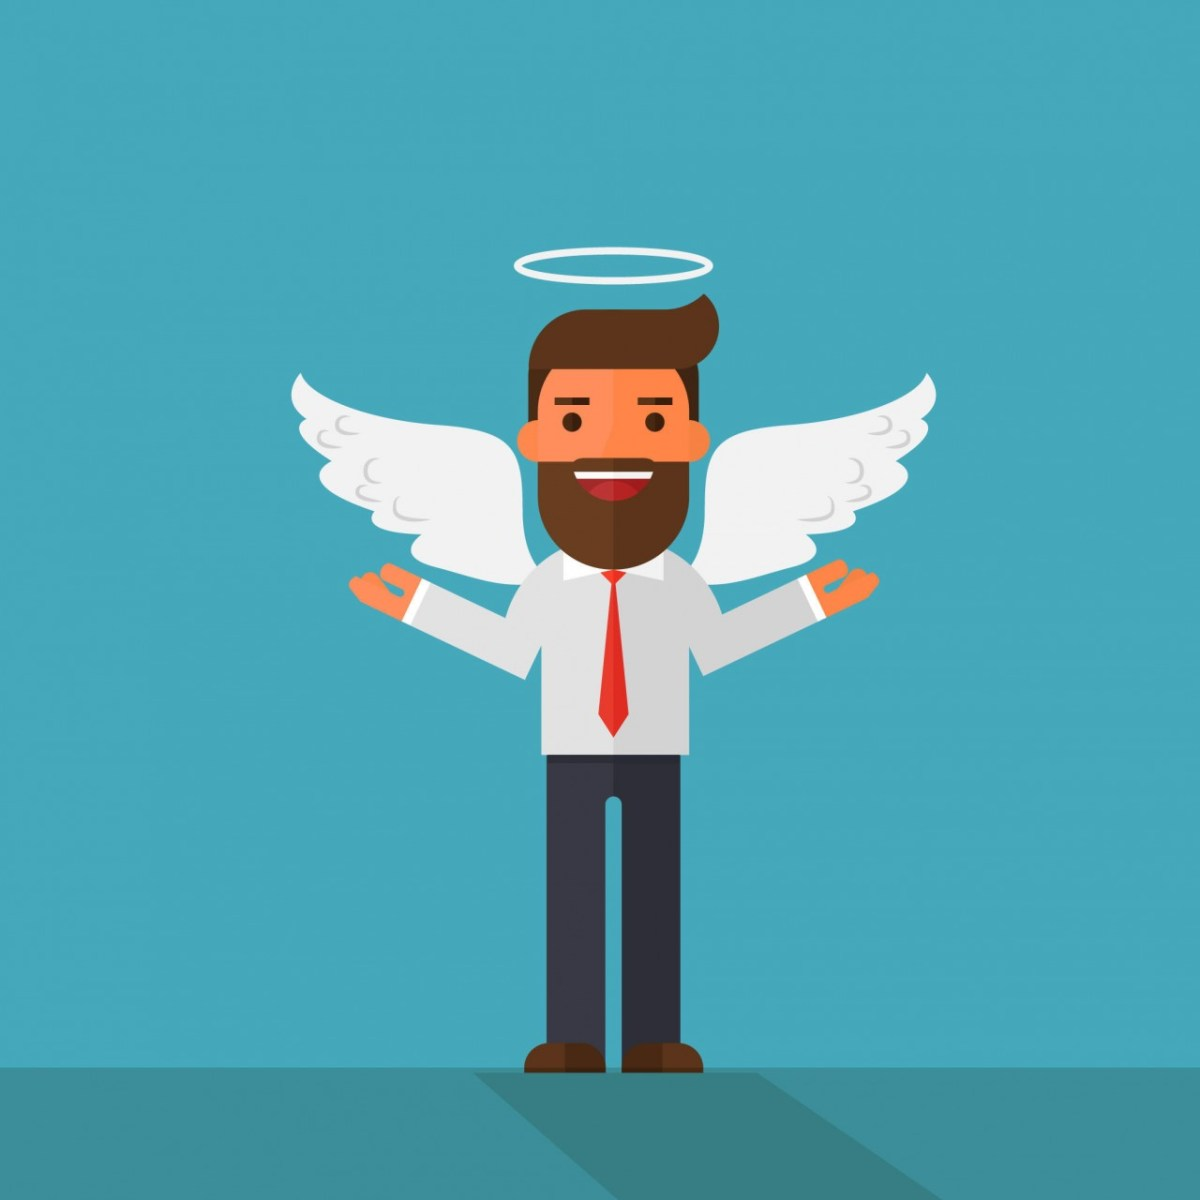 Top 6 Chinese angel investors that give wings to startup dreams